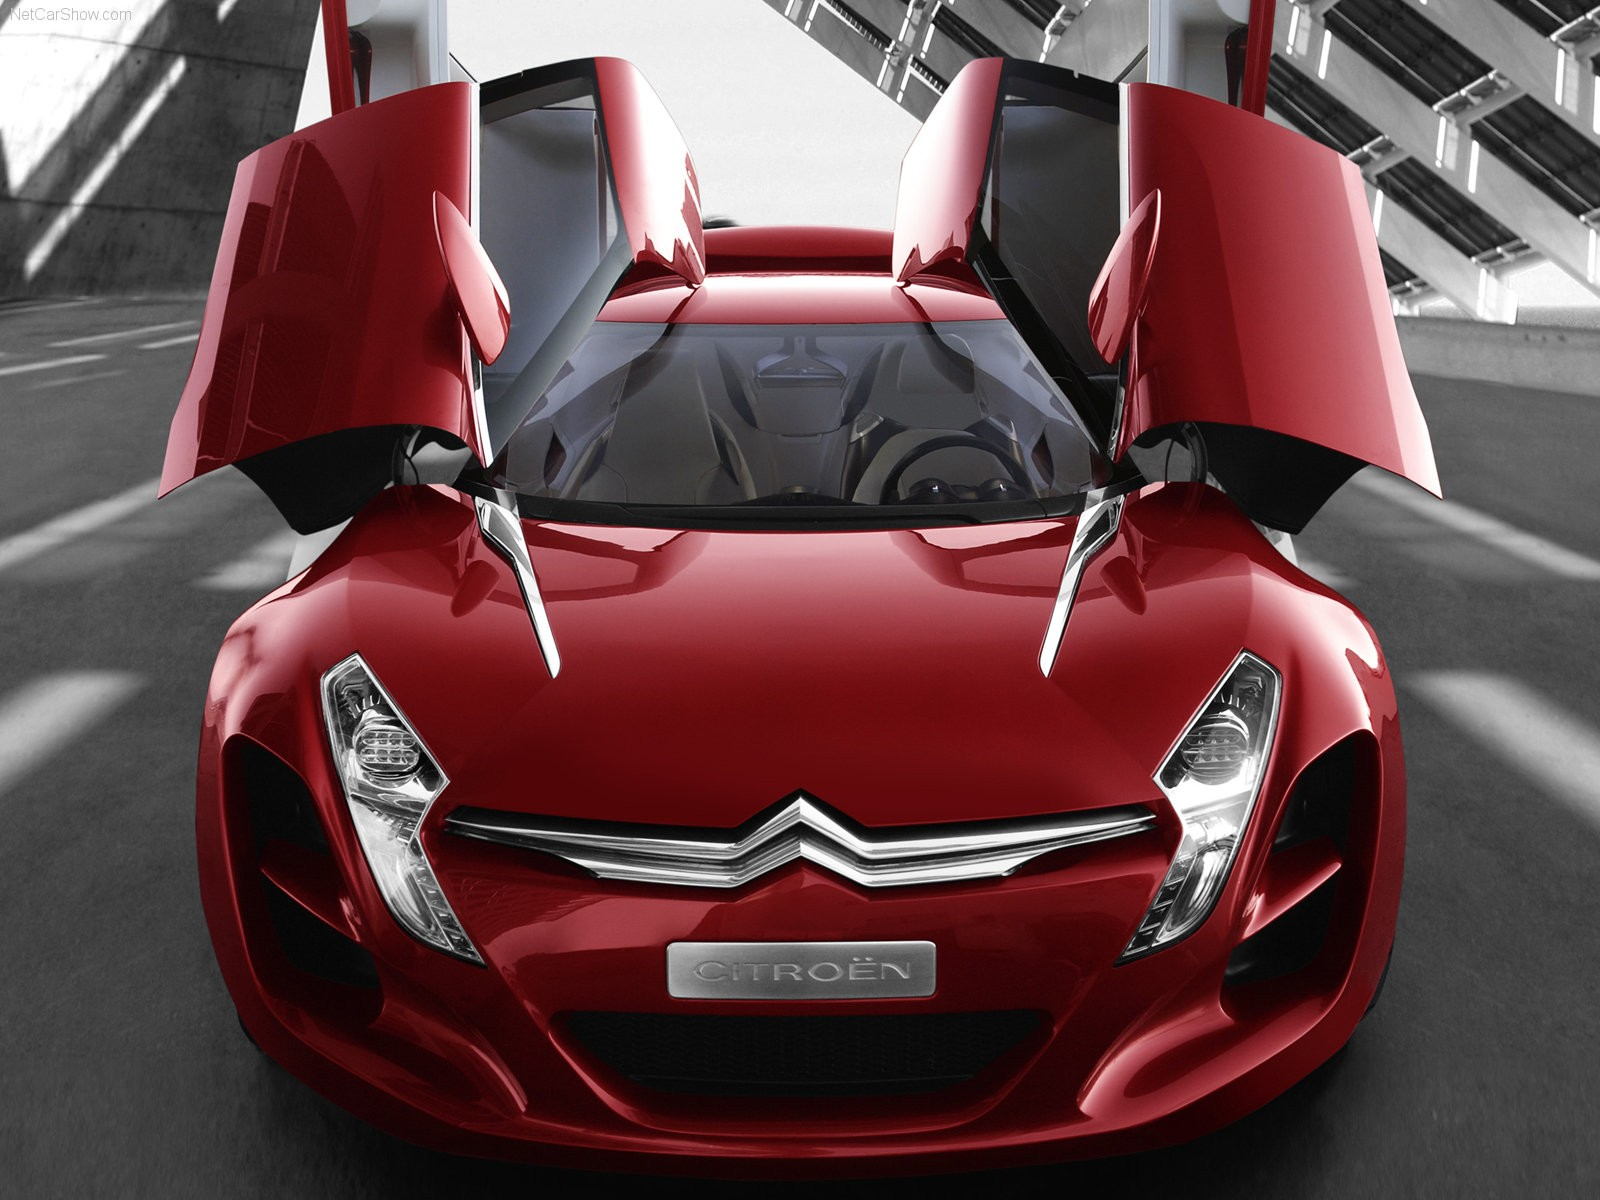 ... Citroen-Photo-Wallpaper ...